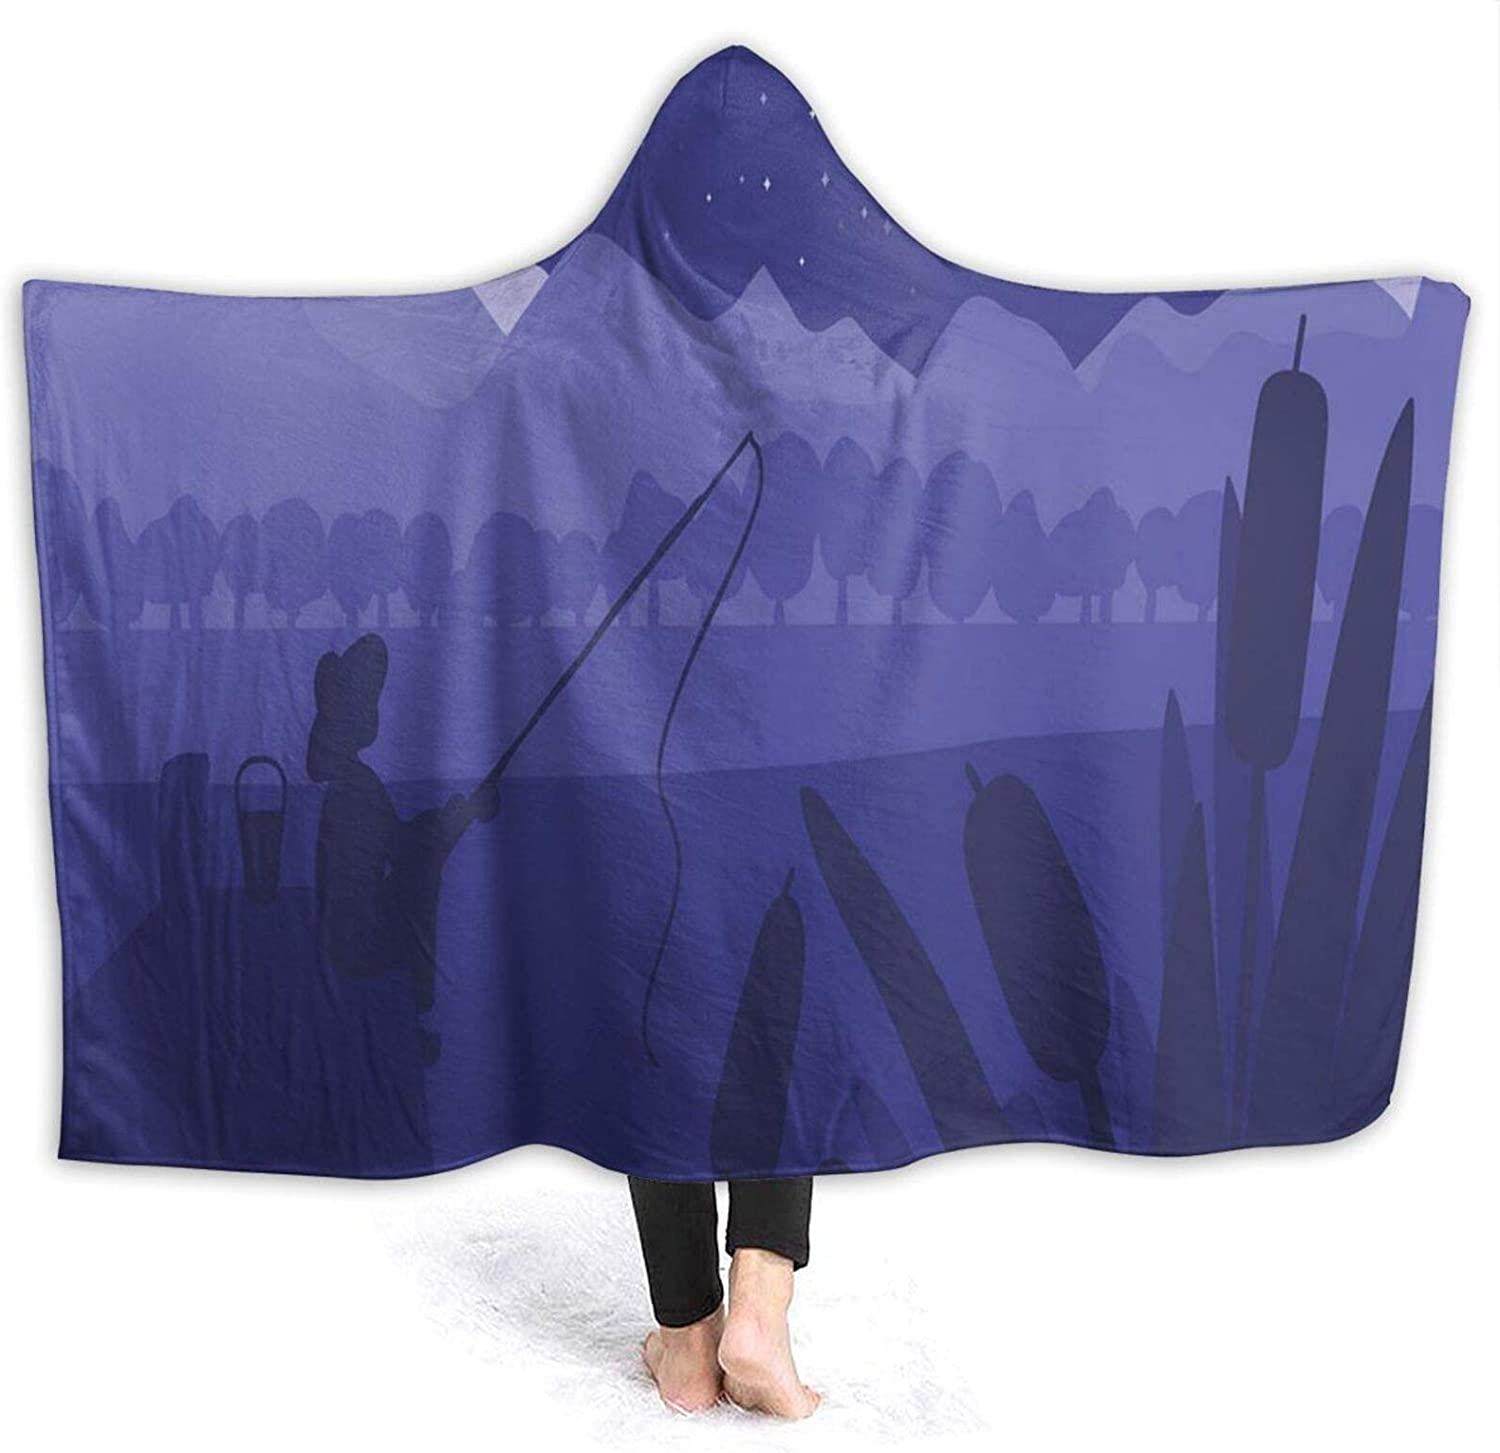 Hooded Blanket Finally popular brand Anti-Pilling Flannel Fashionable Fisherman Fishing Rod O with